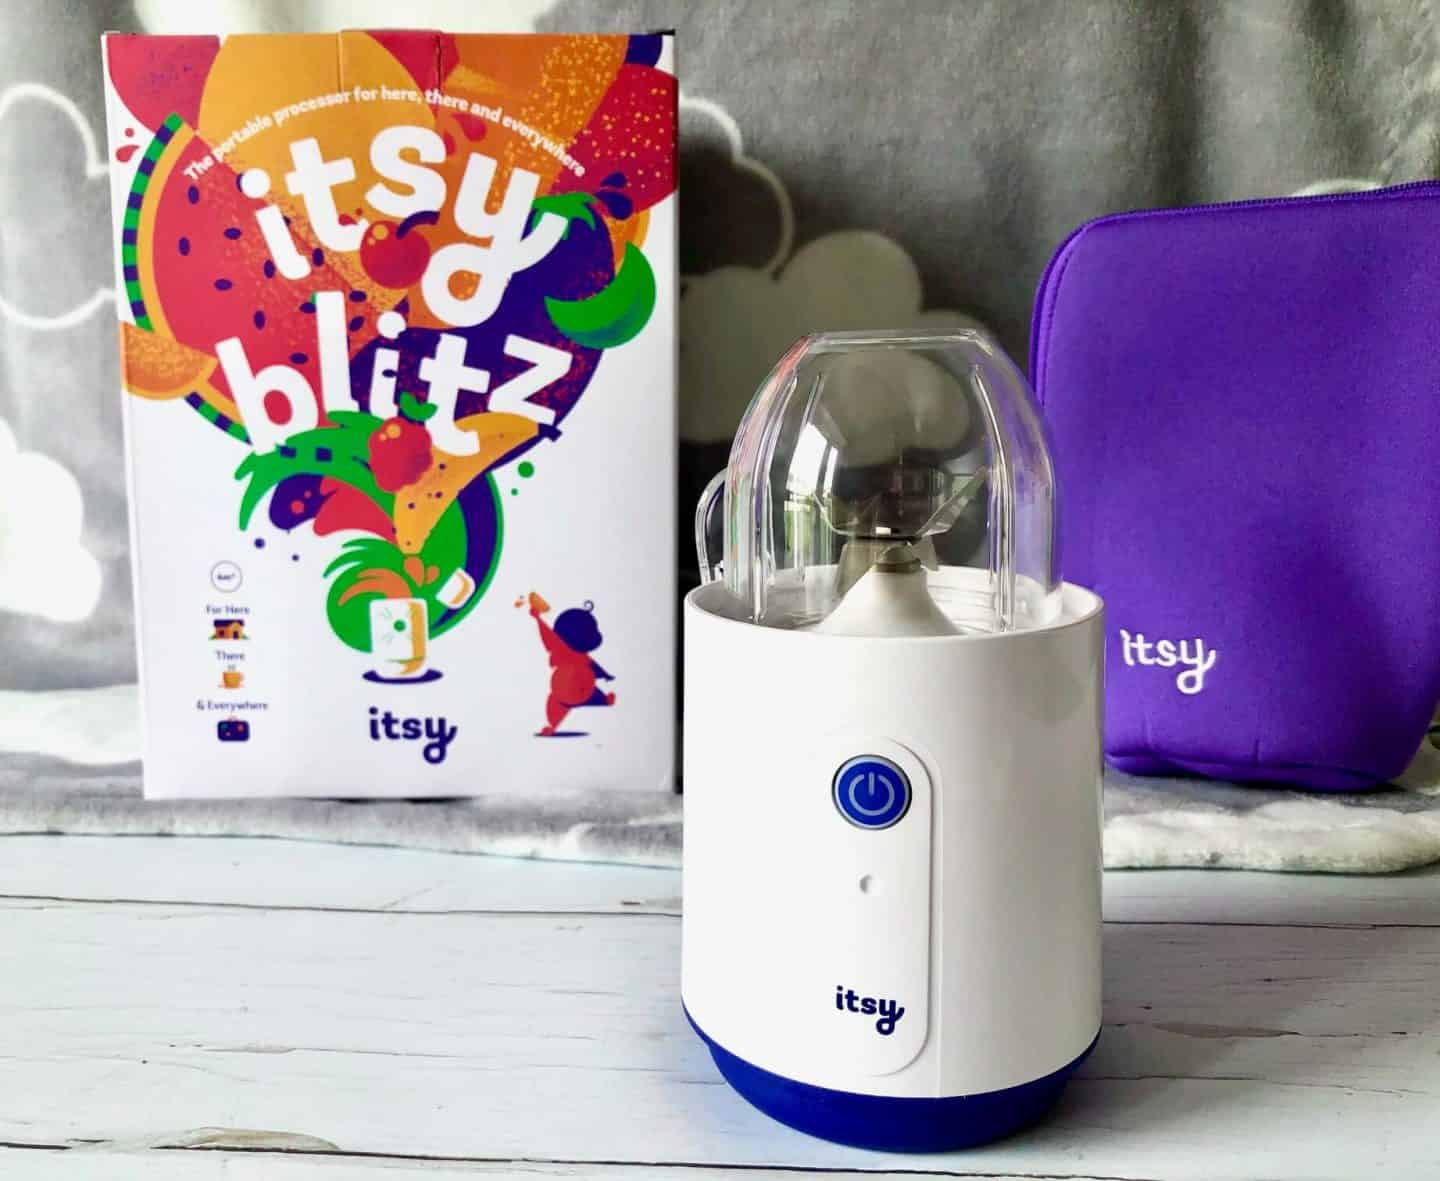 Itsy Blitz portable blender